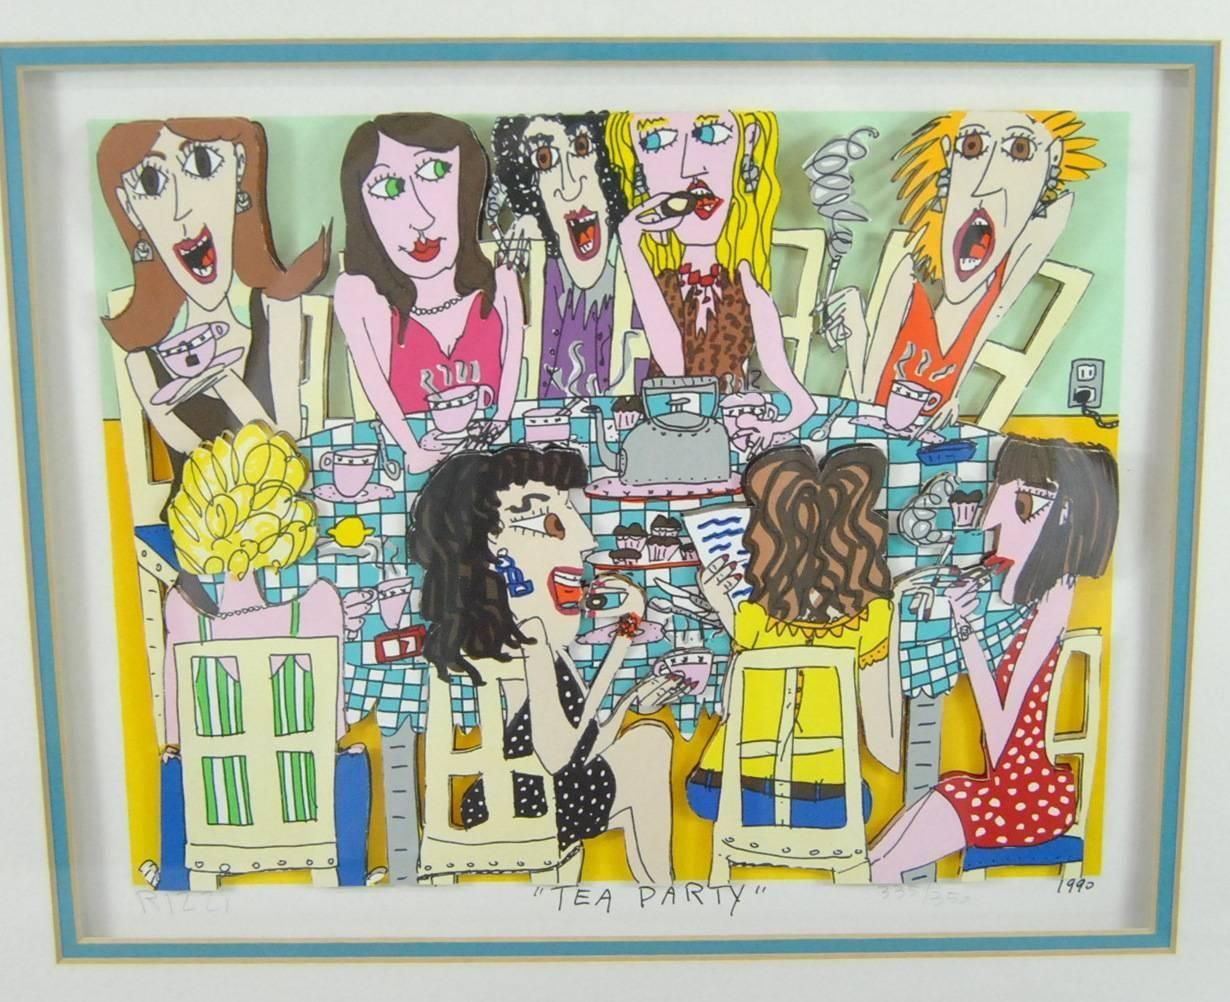 James Rizzi Tea Party 3-D 1990 Hand-Cut Signed and Numbered Lithograph | From a unique collection of antique and modern contemporary art at https://www.1stdibs.com/furniture/wall-decorations/contemporary-art/